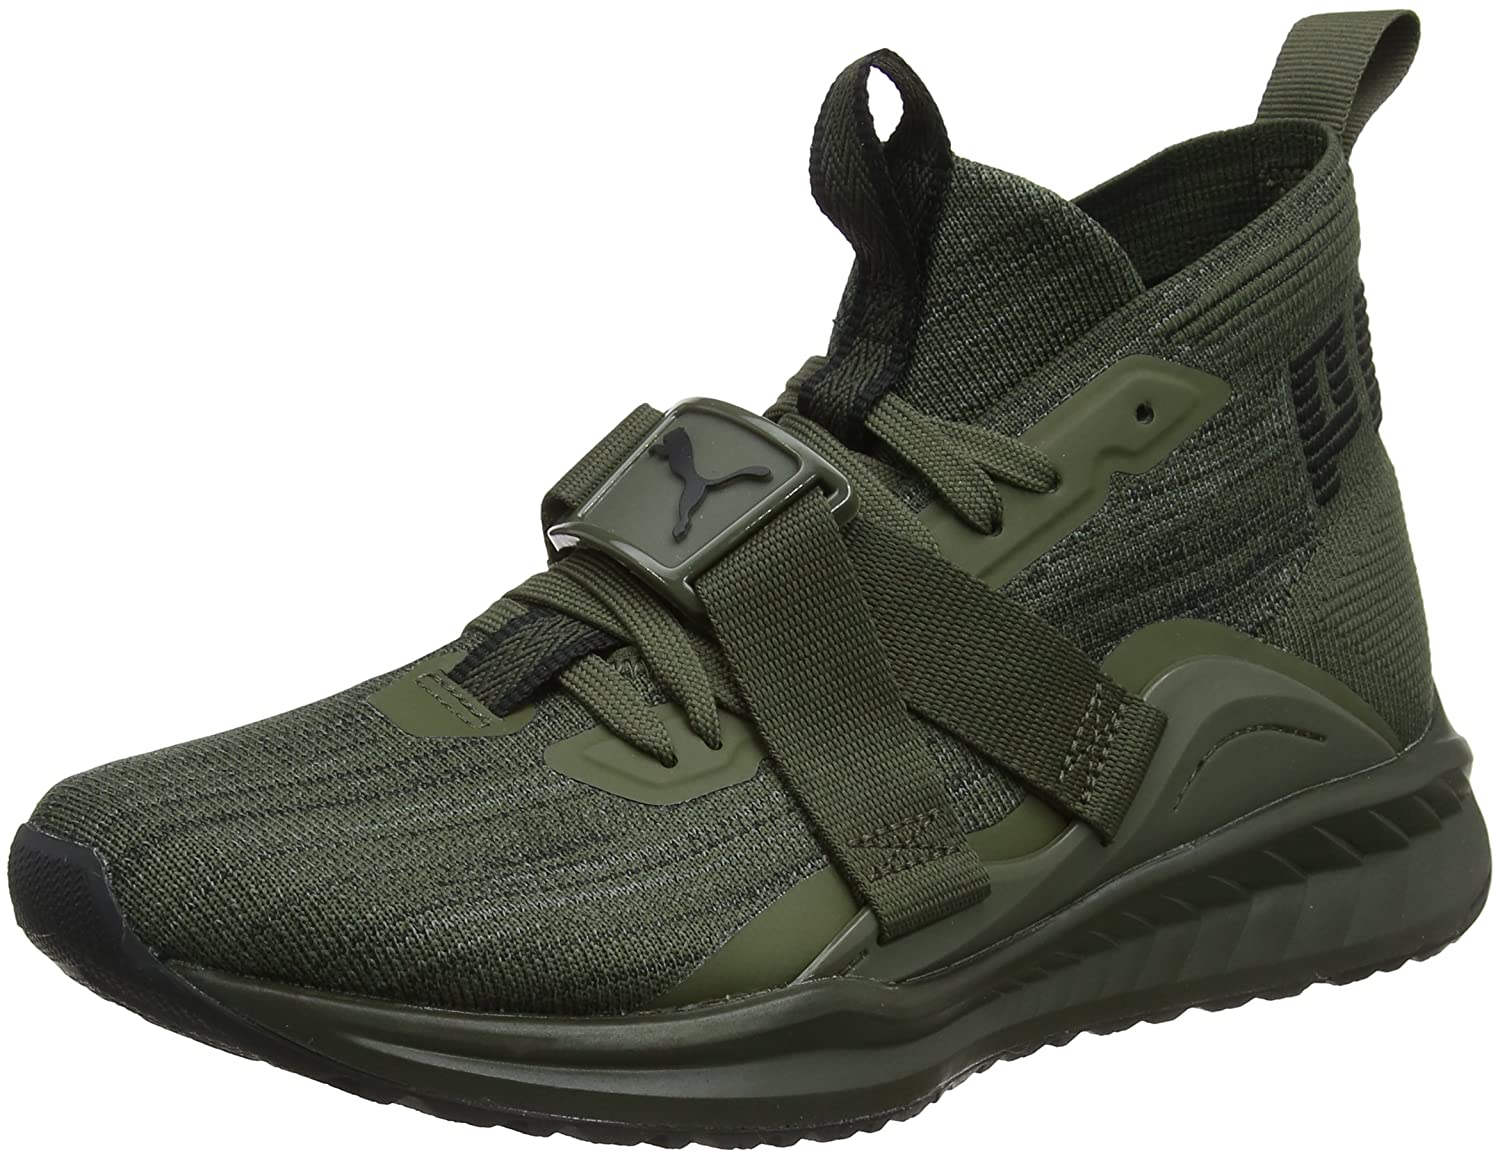 Braun (Forest Night-puma schwarz-quiet Shade) Puma Herren Ignite Evoknit 2 Cross-Trainer